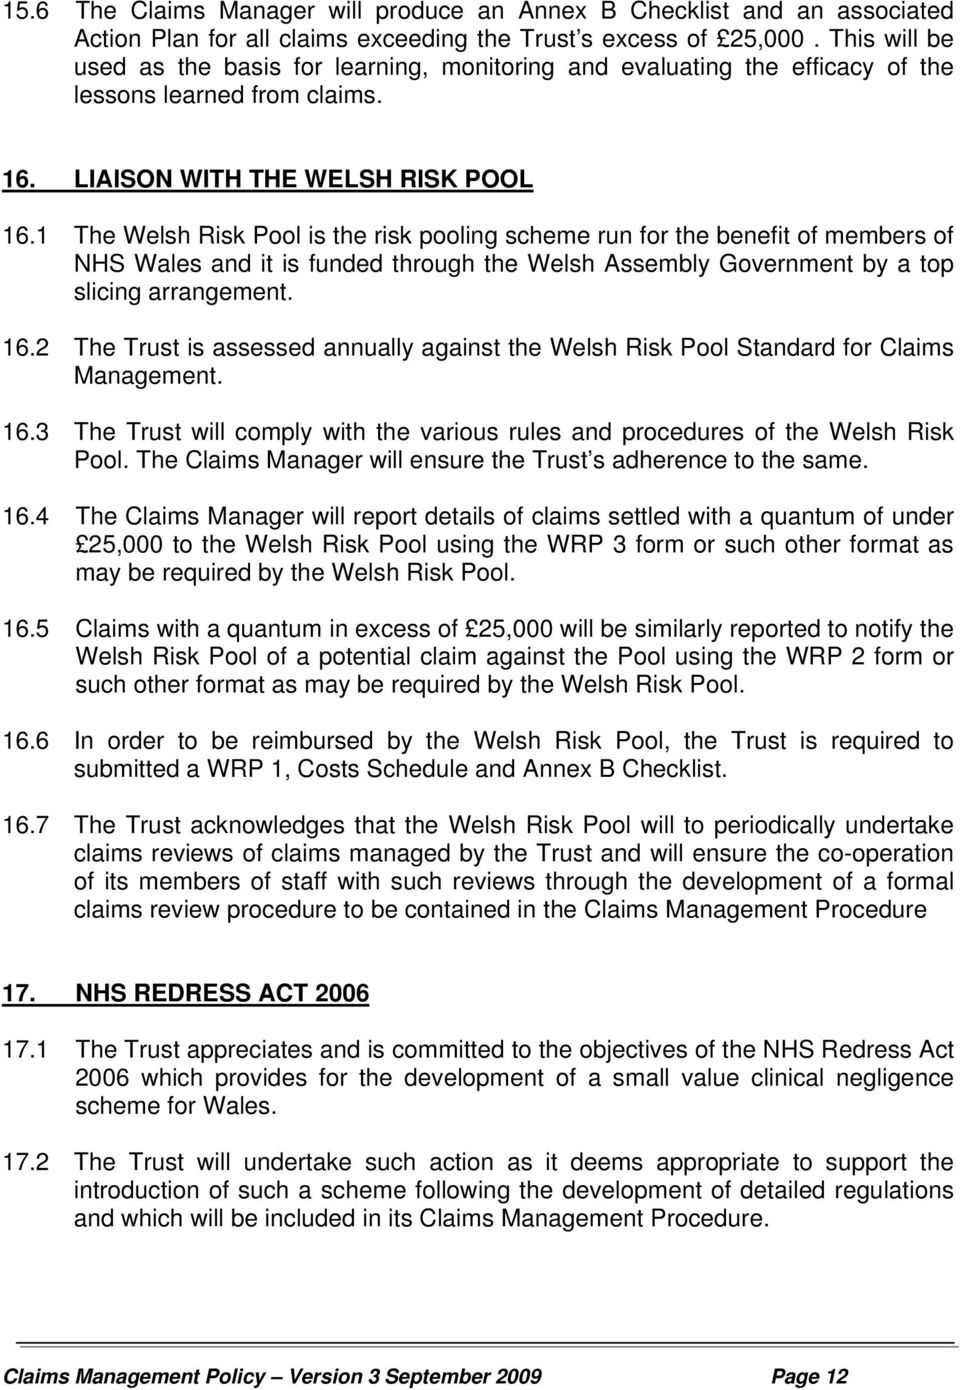 1 The Welsh Risk Pool is the risk pooling scheme run for the benefit of members of NHS Wales and it is funded through the Welsh Assembly Government by a top slicing arrangement. 16.